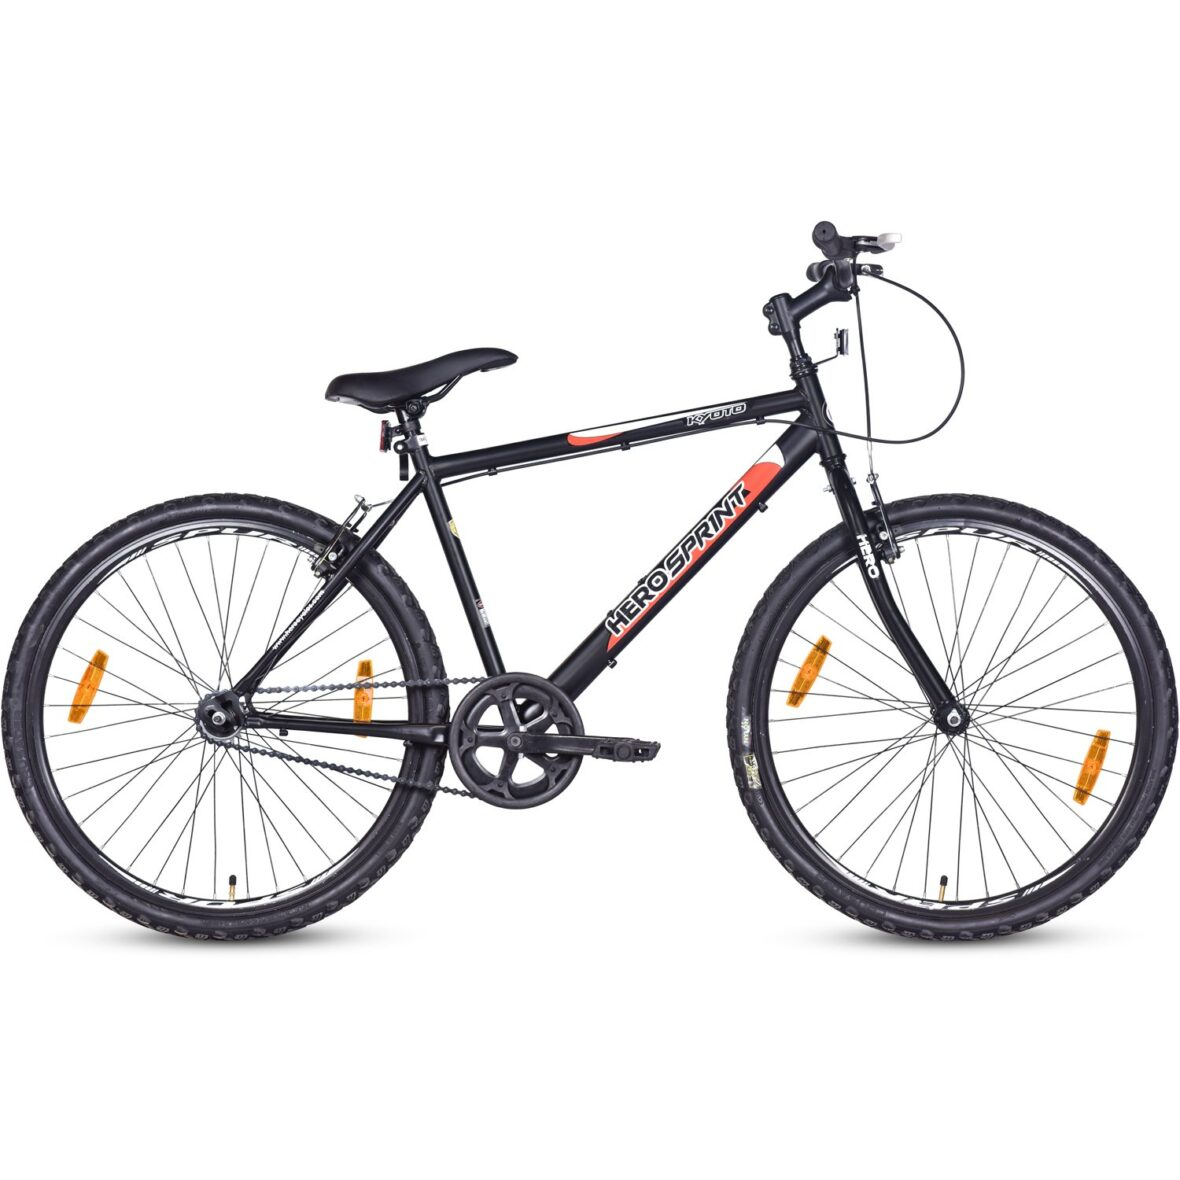 How To Ride A Cycle, Hero Kyoto 26T Single Speed Mountain Bike Black, Ideal For 12 Years